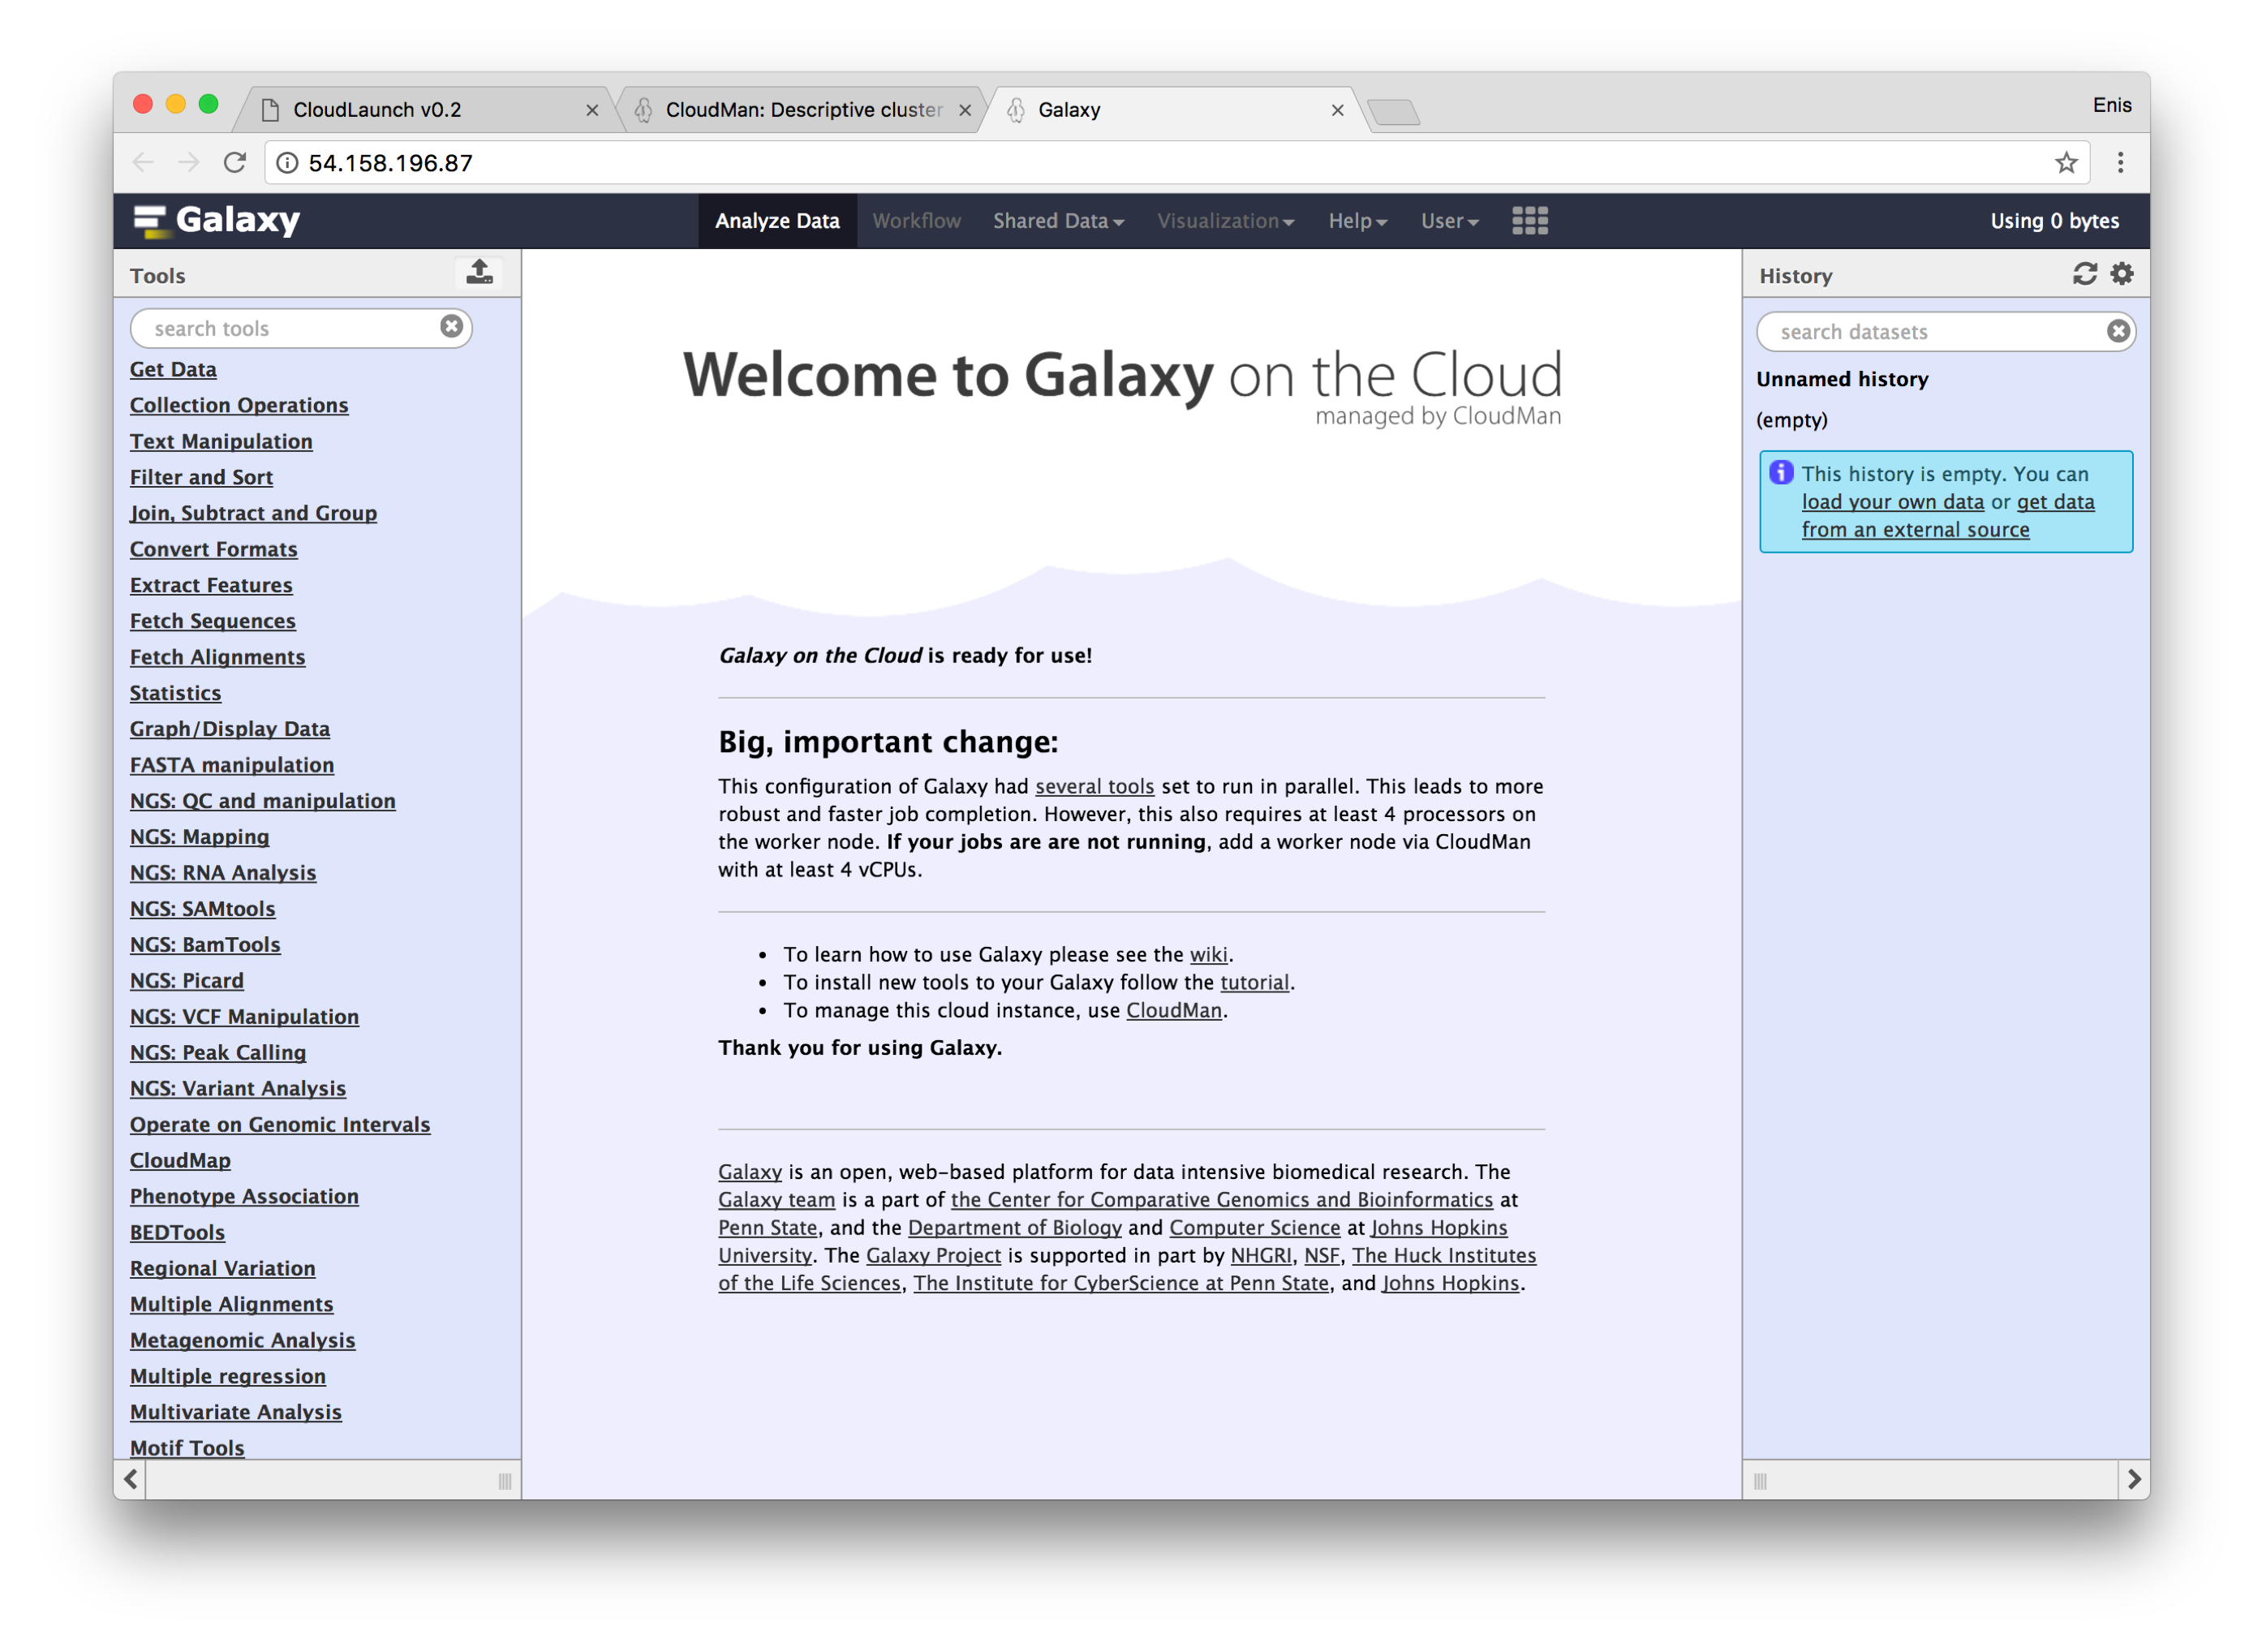 Getting Started with Galaxy on the Cloud